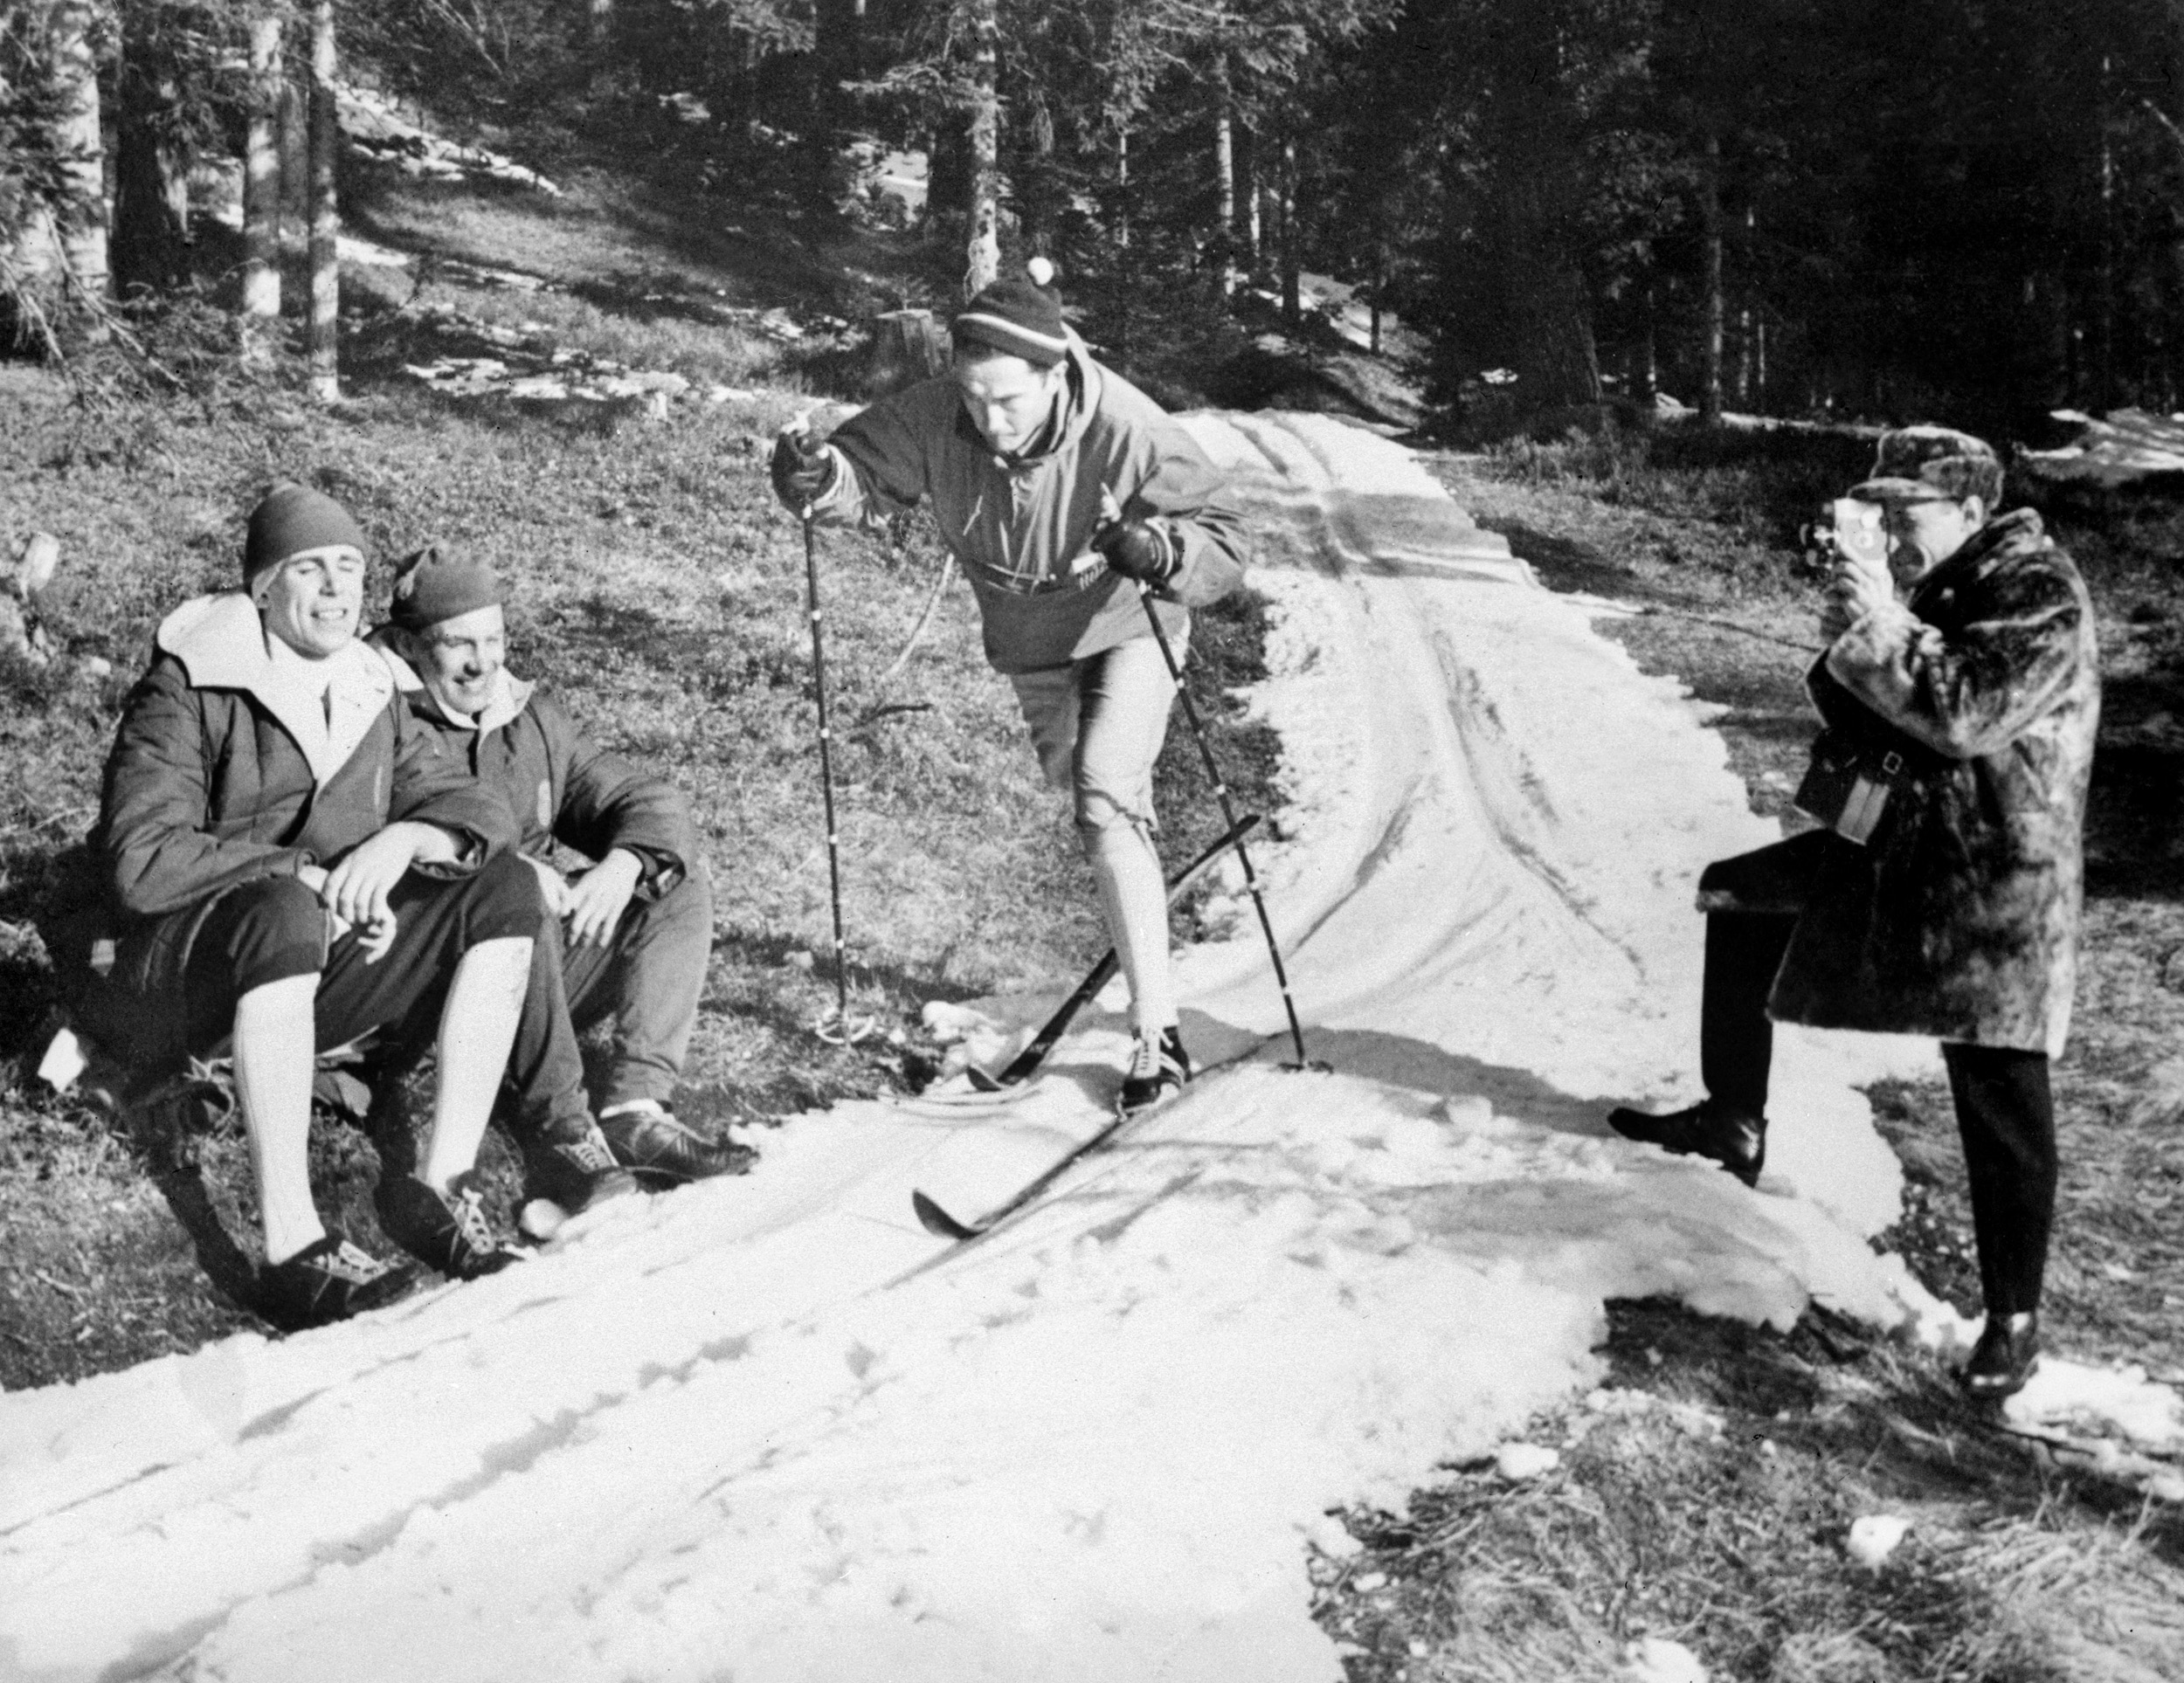 black and white photo of a man skiing